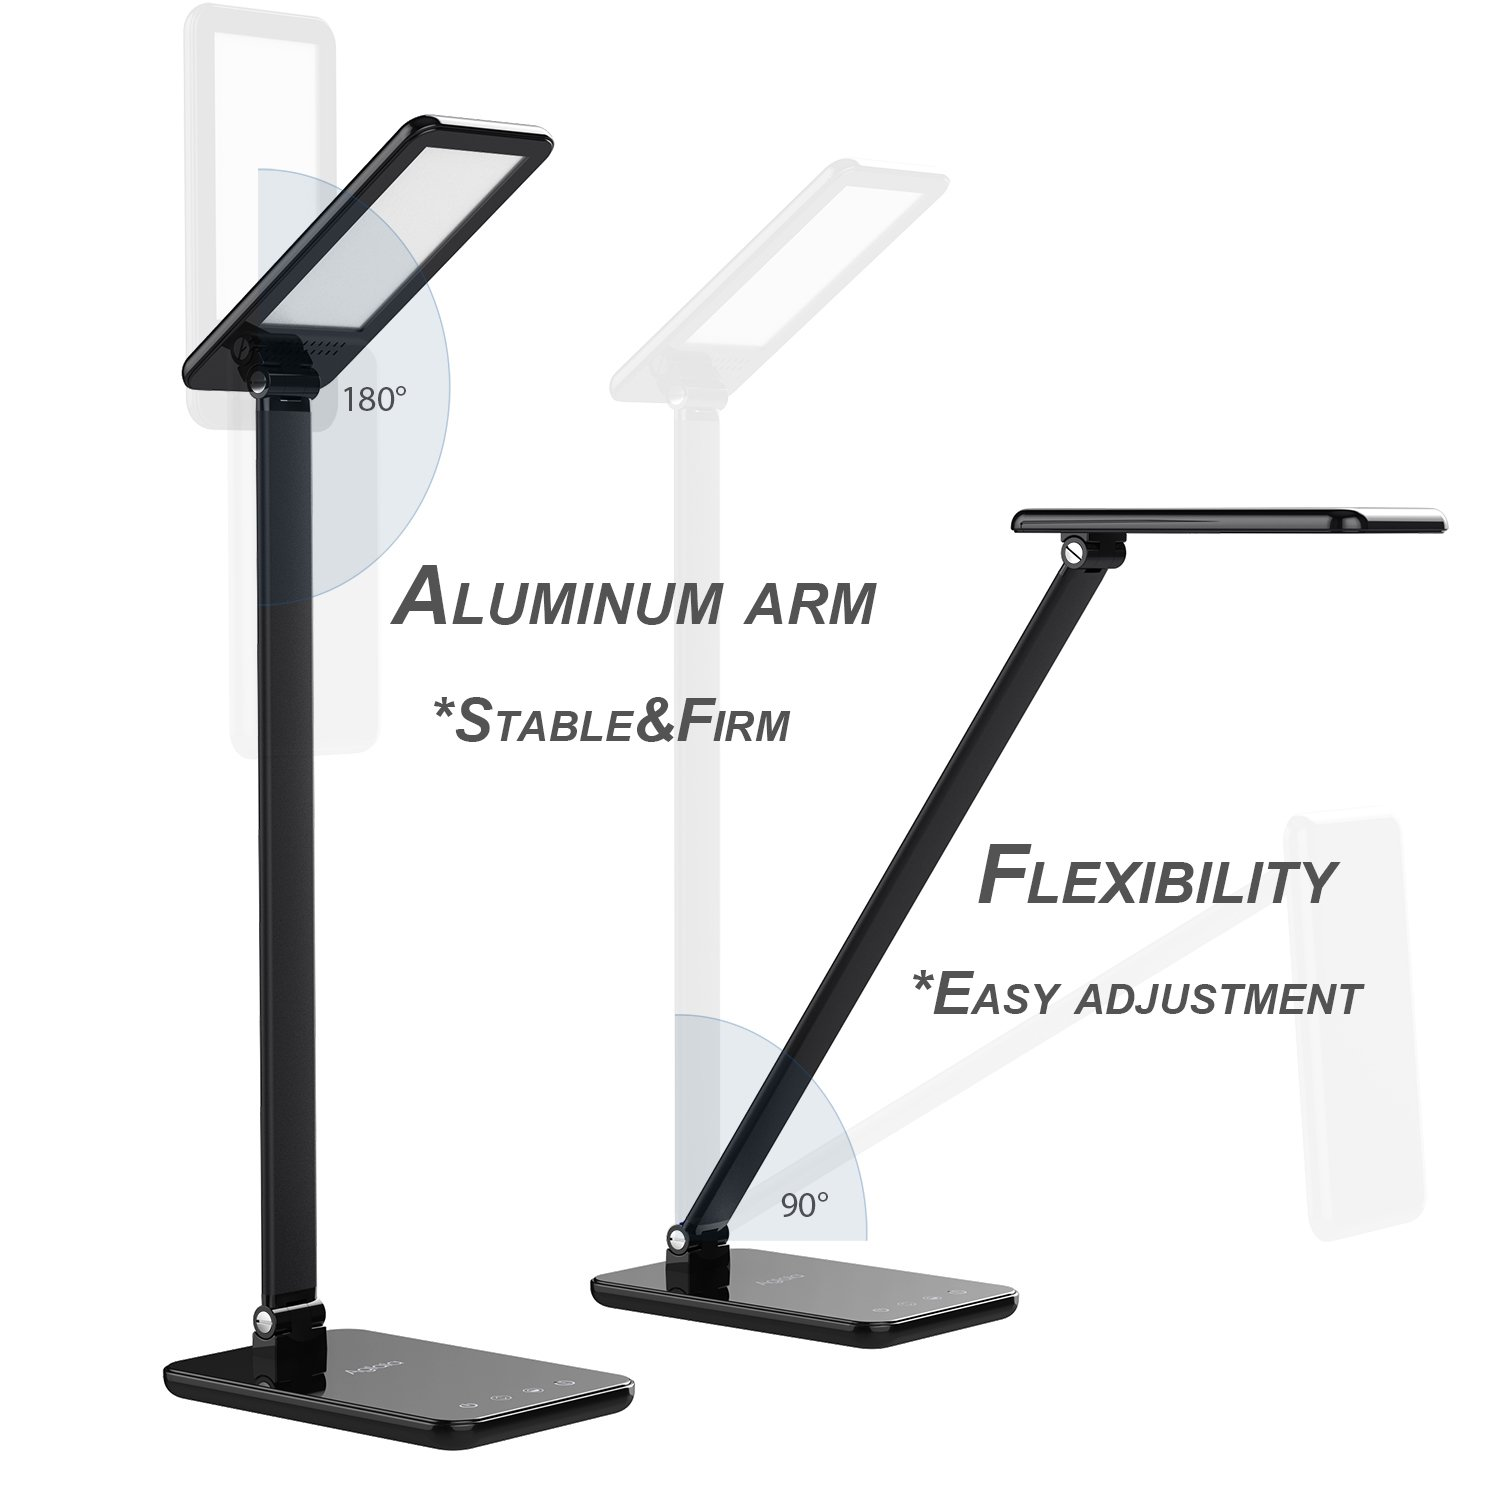 LED Desk Lamp 8W, Aglaia Eye-Caring Table Lamps with Dimmable Touch Control, Stepless Brightness Levels and Lighting Modes, Aluminum Alloy ARM, 1-Hour Auto Timer, Memory Function by Aglaia (Image #5)